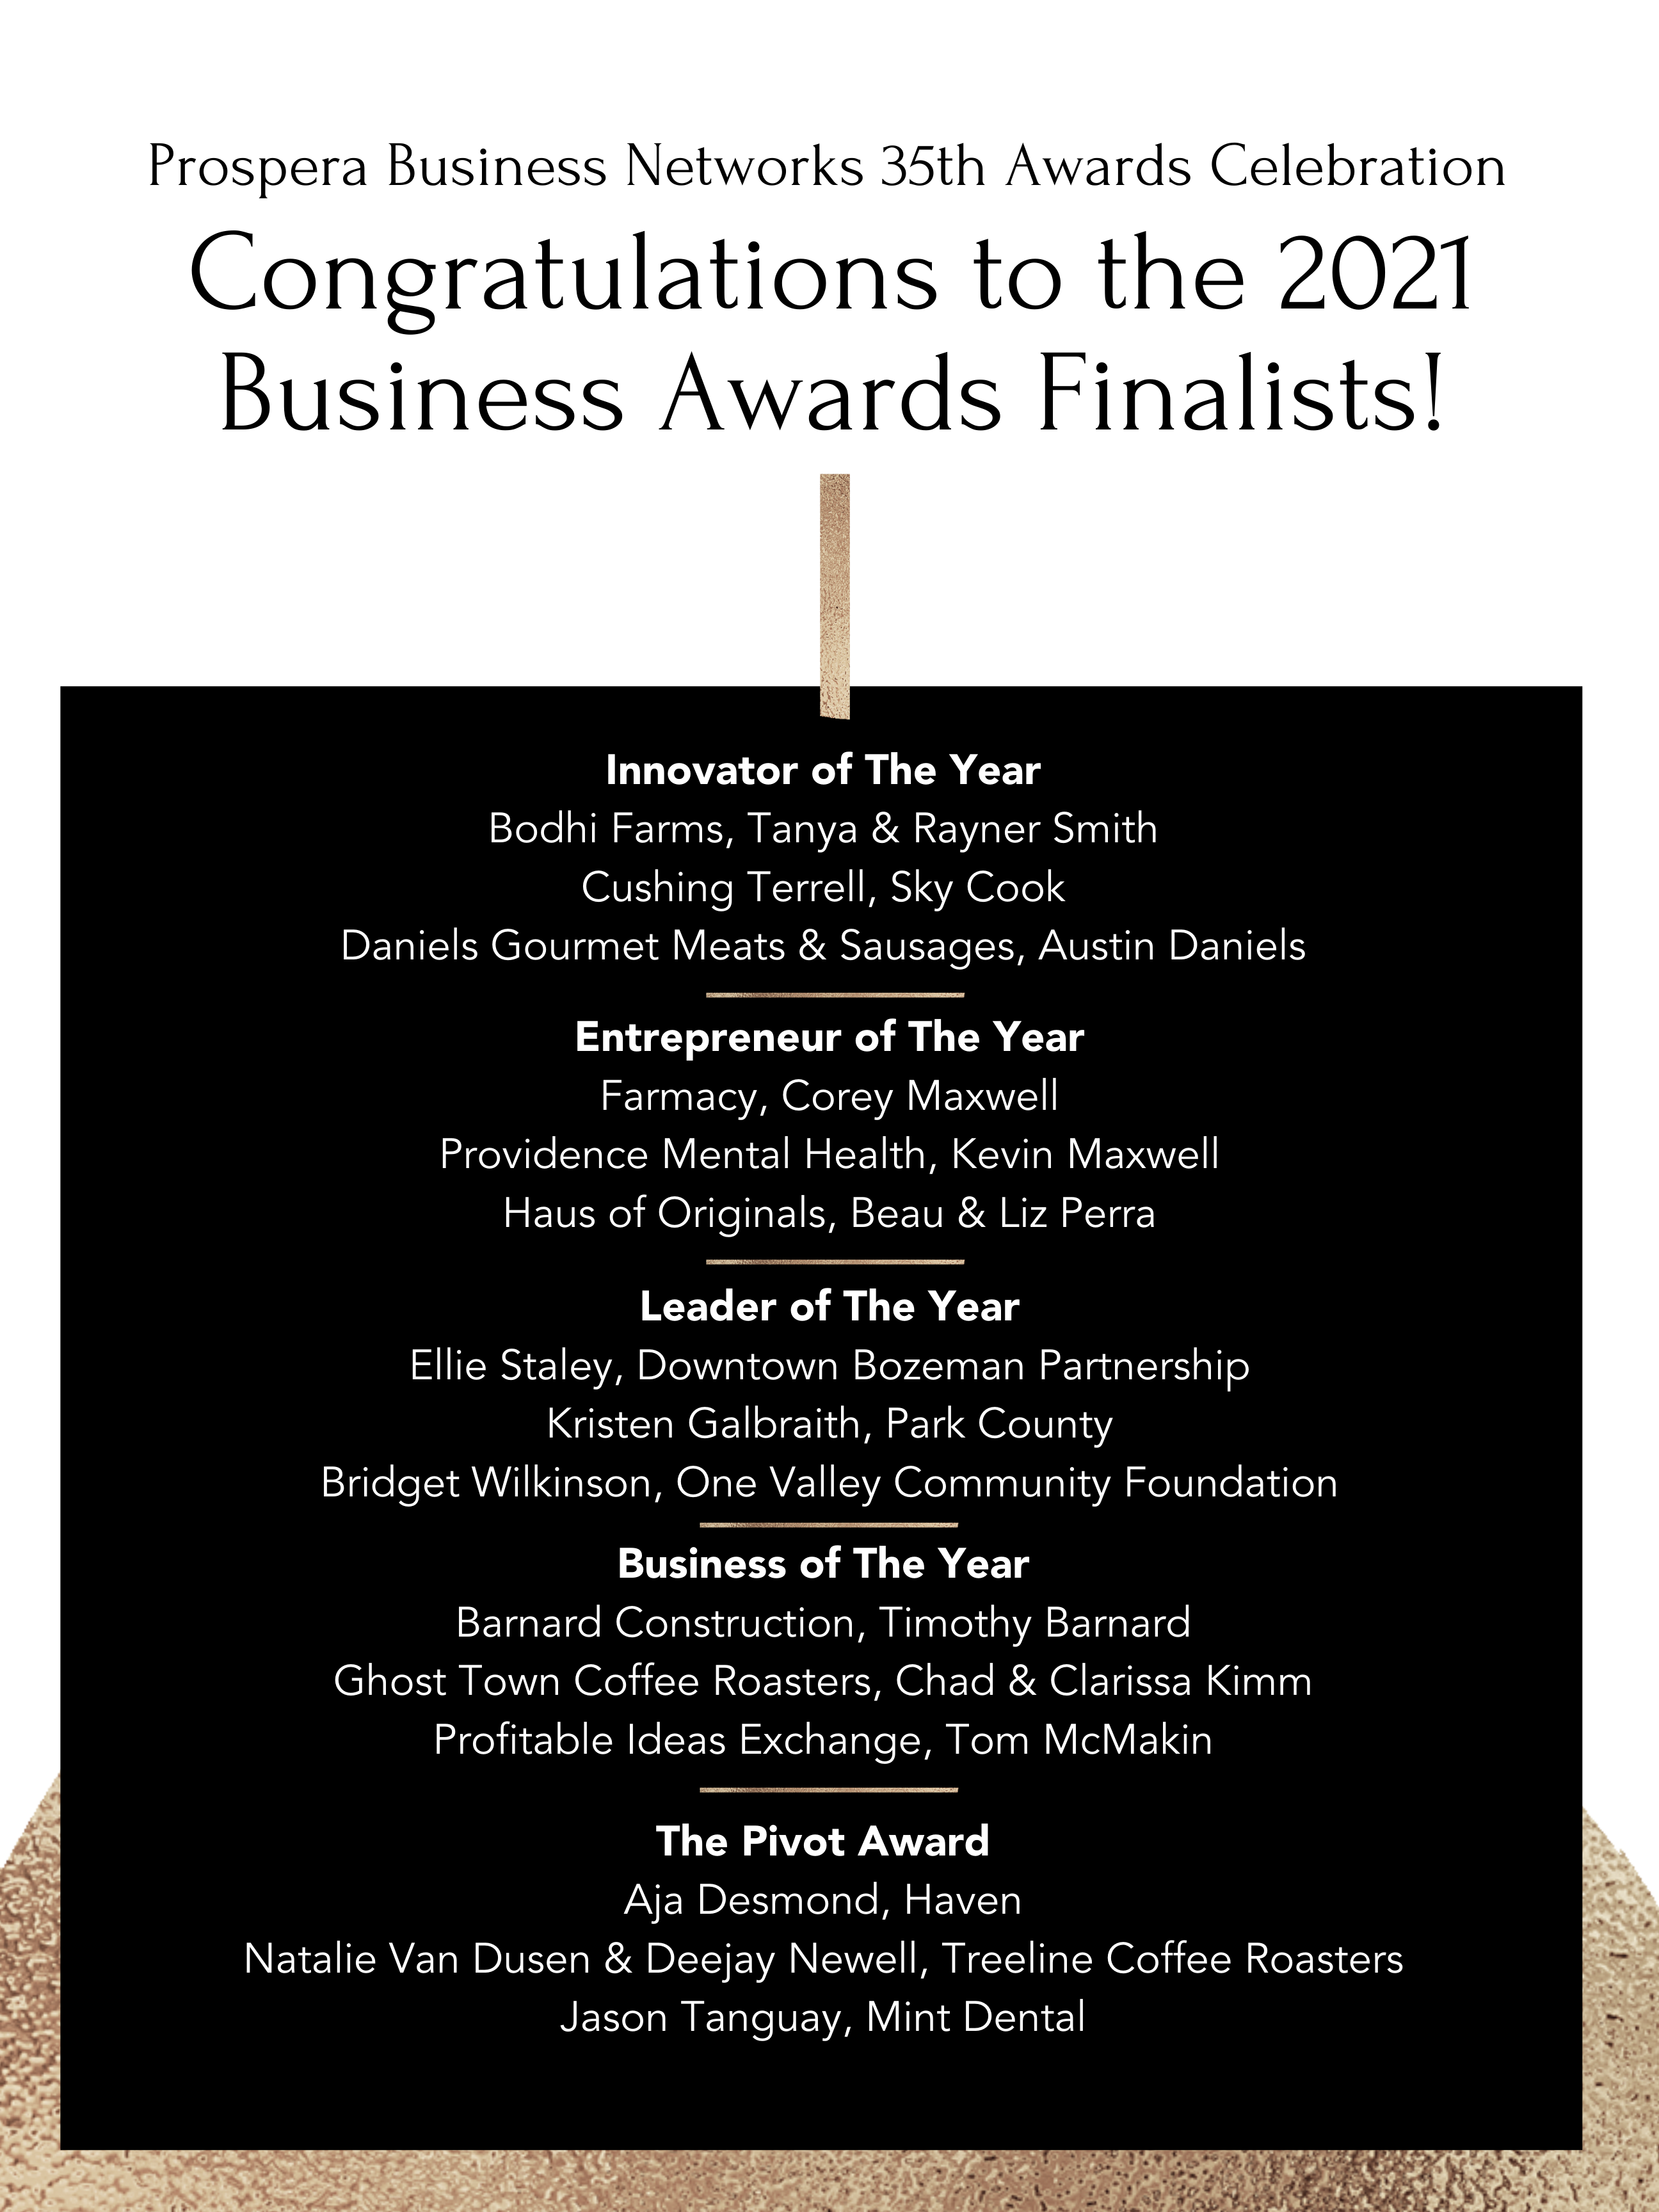 Congratulationsto The 2021 Business Awards Finalists 3